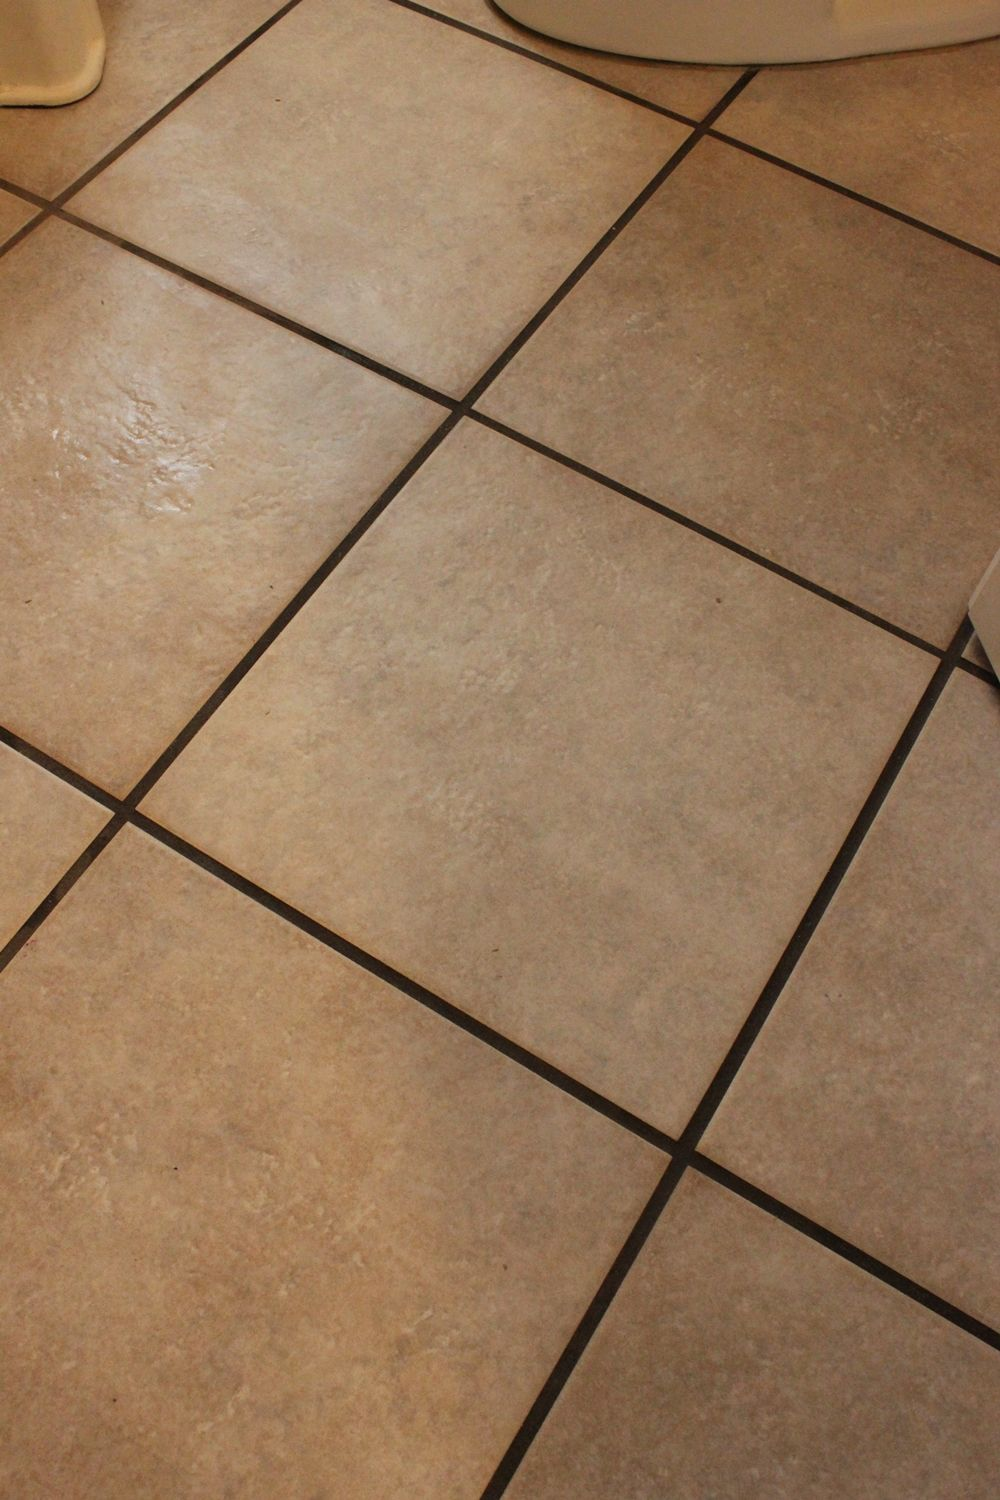 diy natural grout cleaner tile floor